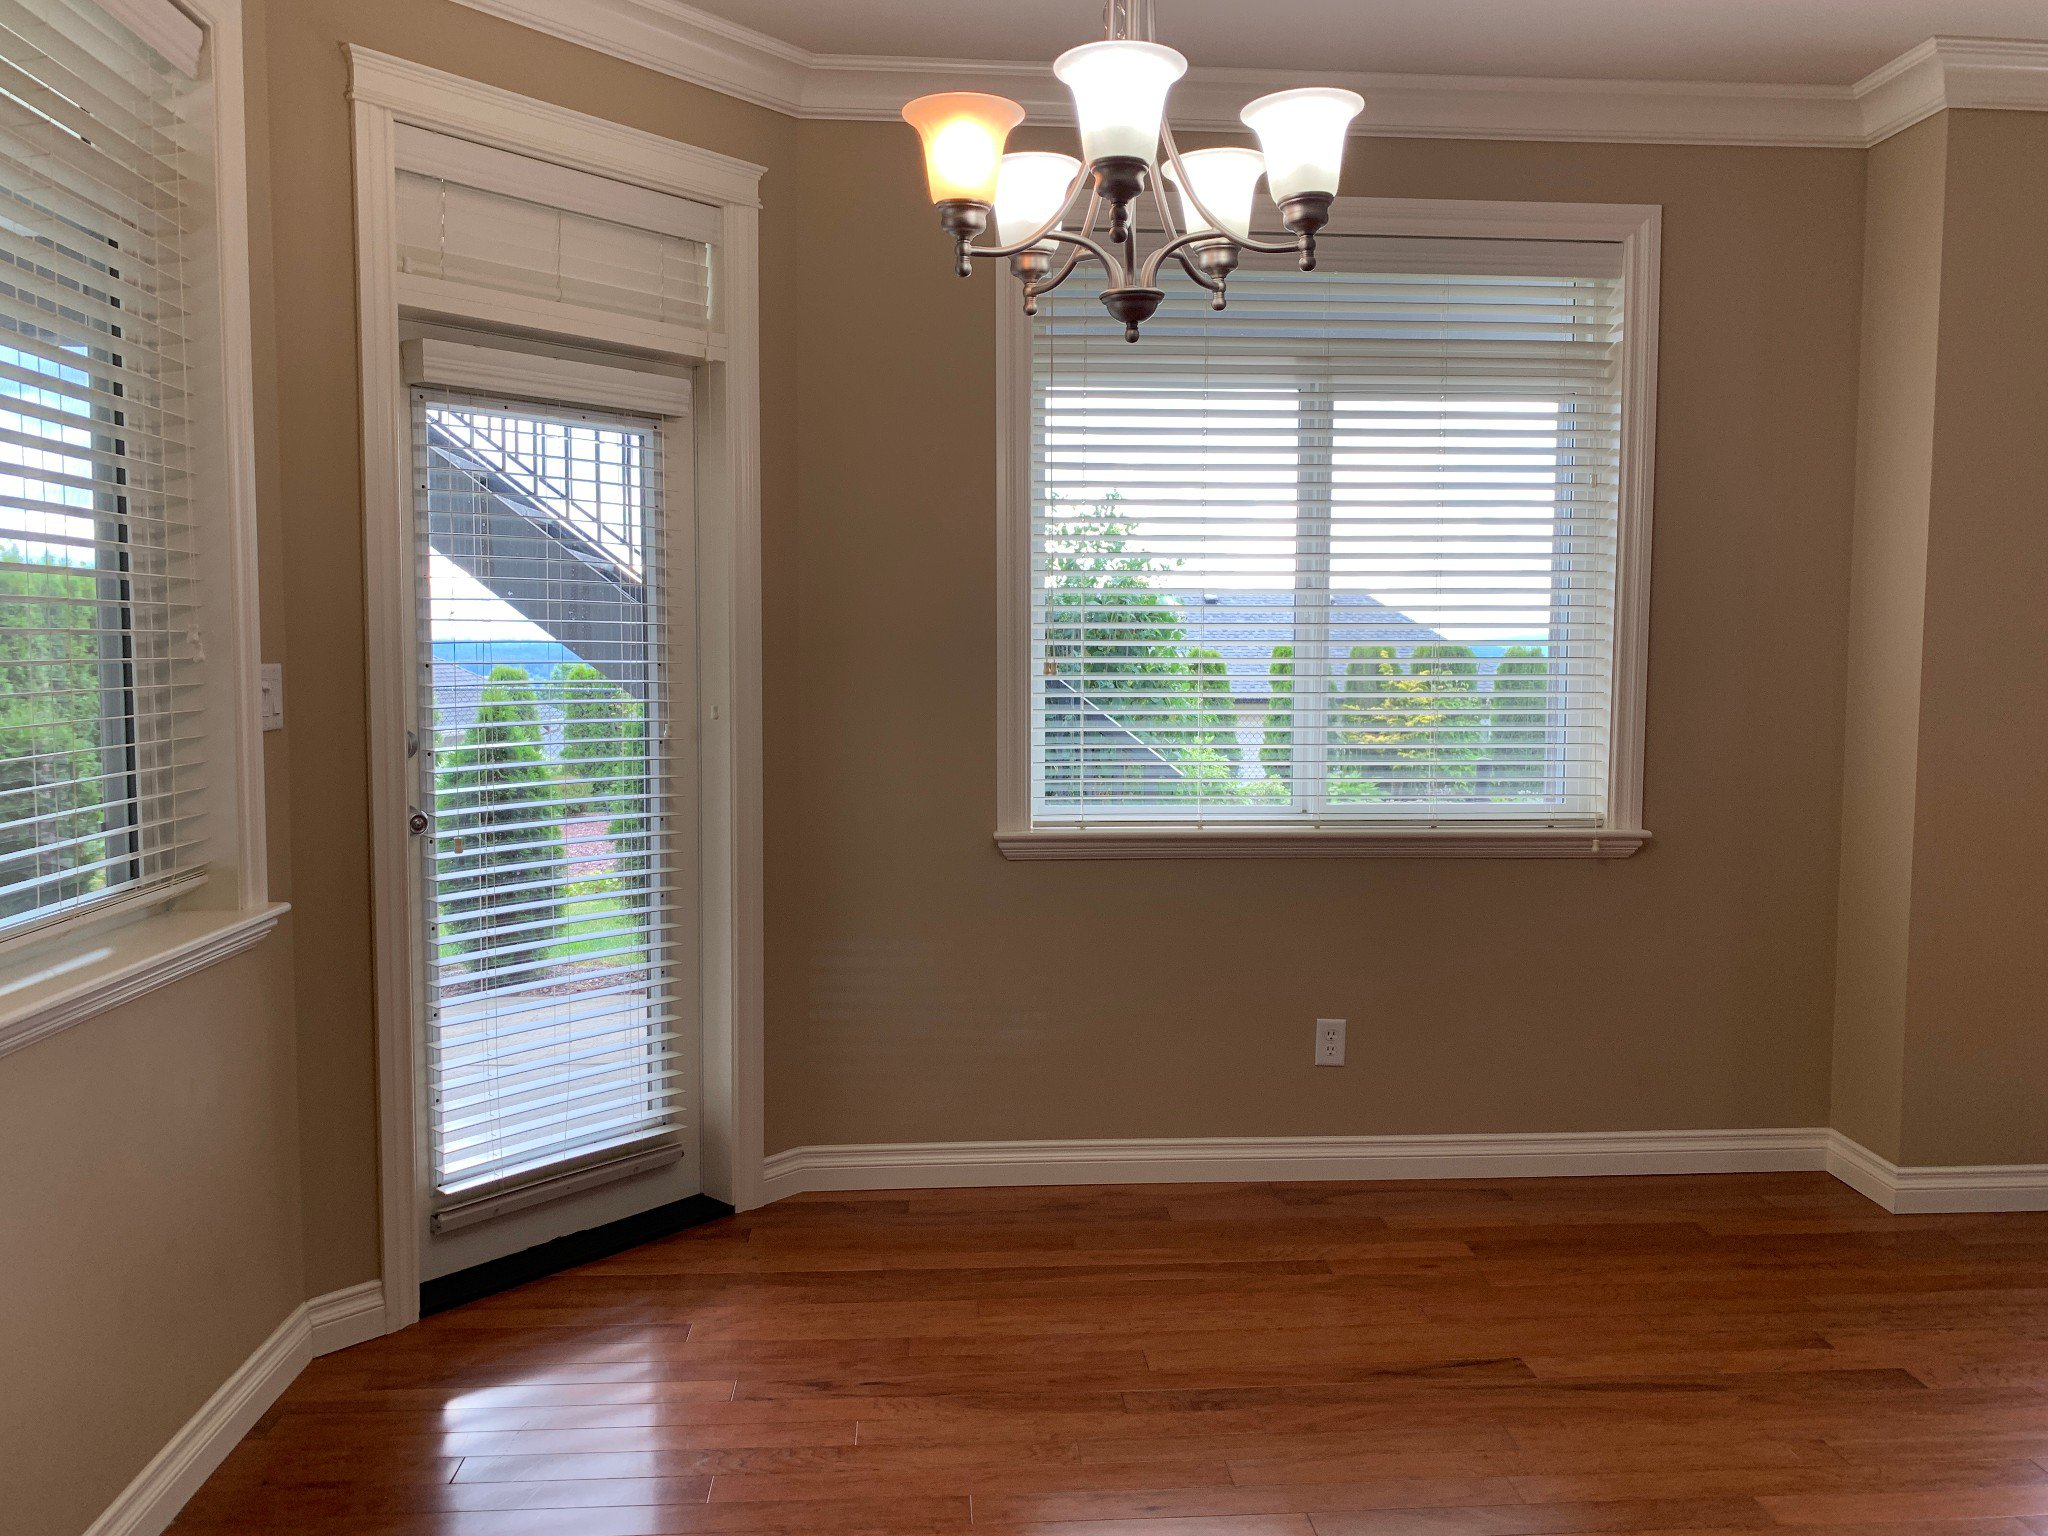 Photo 7: Photos: BSMT 3975 Caves Court in Abbotsford: Abbotsford East Condo for rent